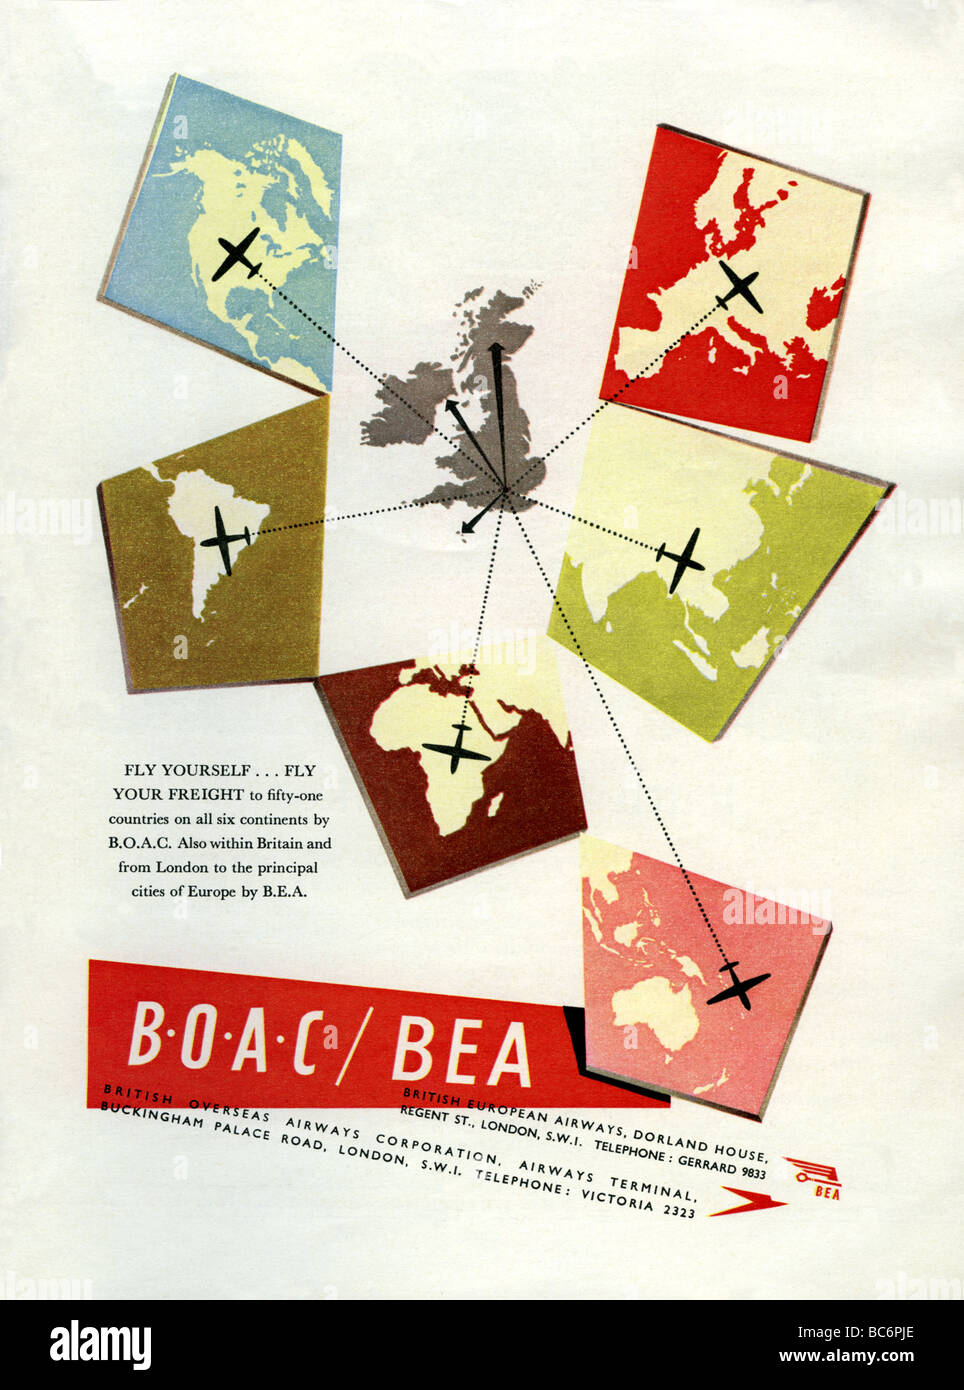 1951 colour advertisement for British airlines BOAC and BEA - Stock Image